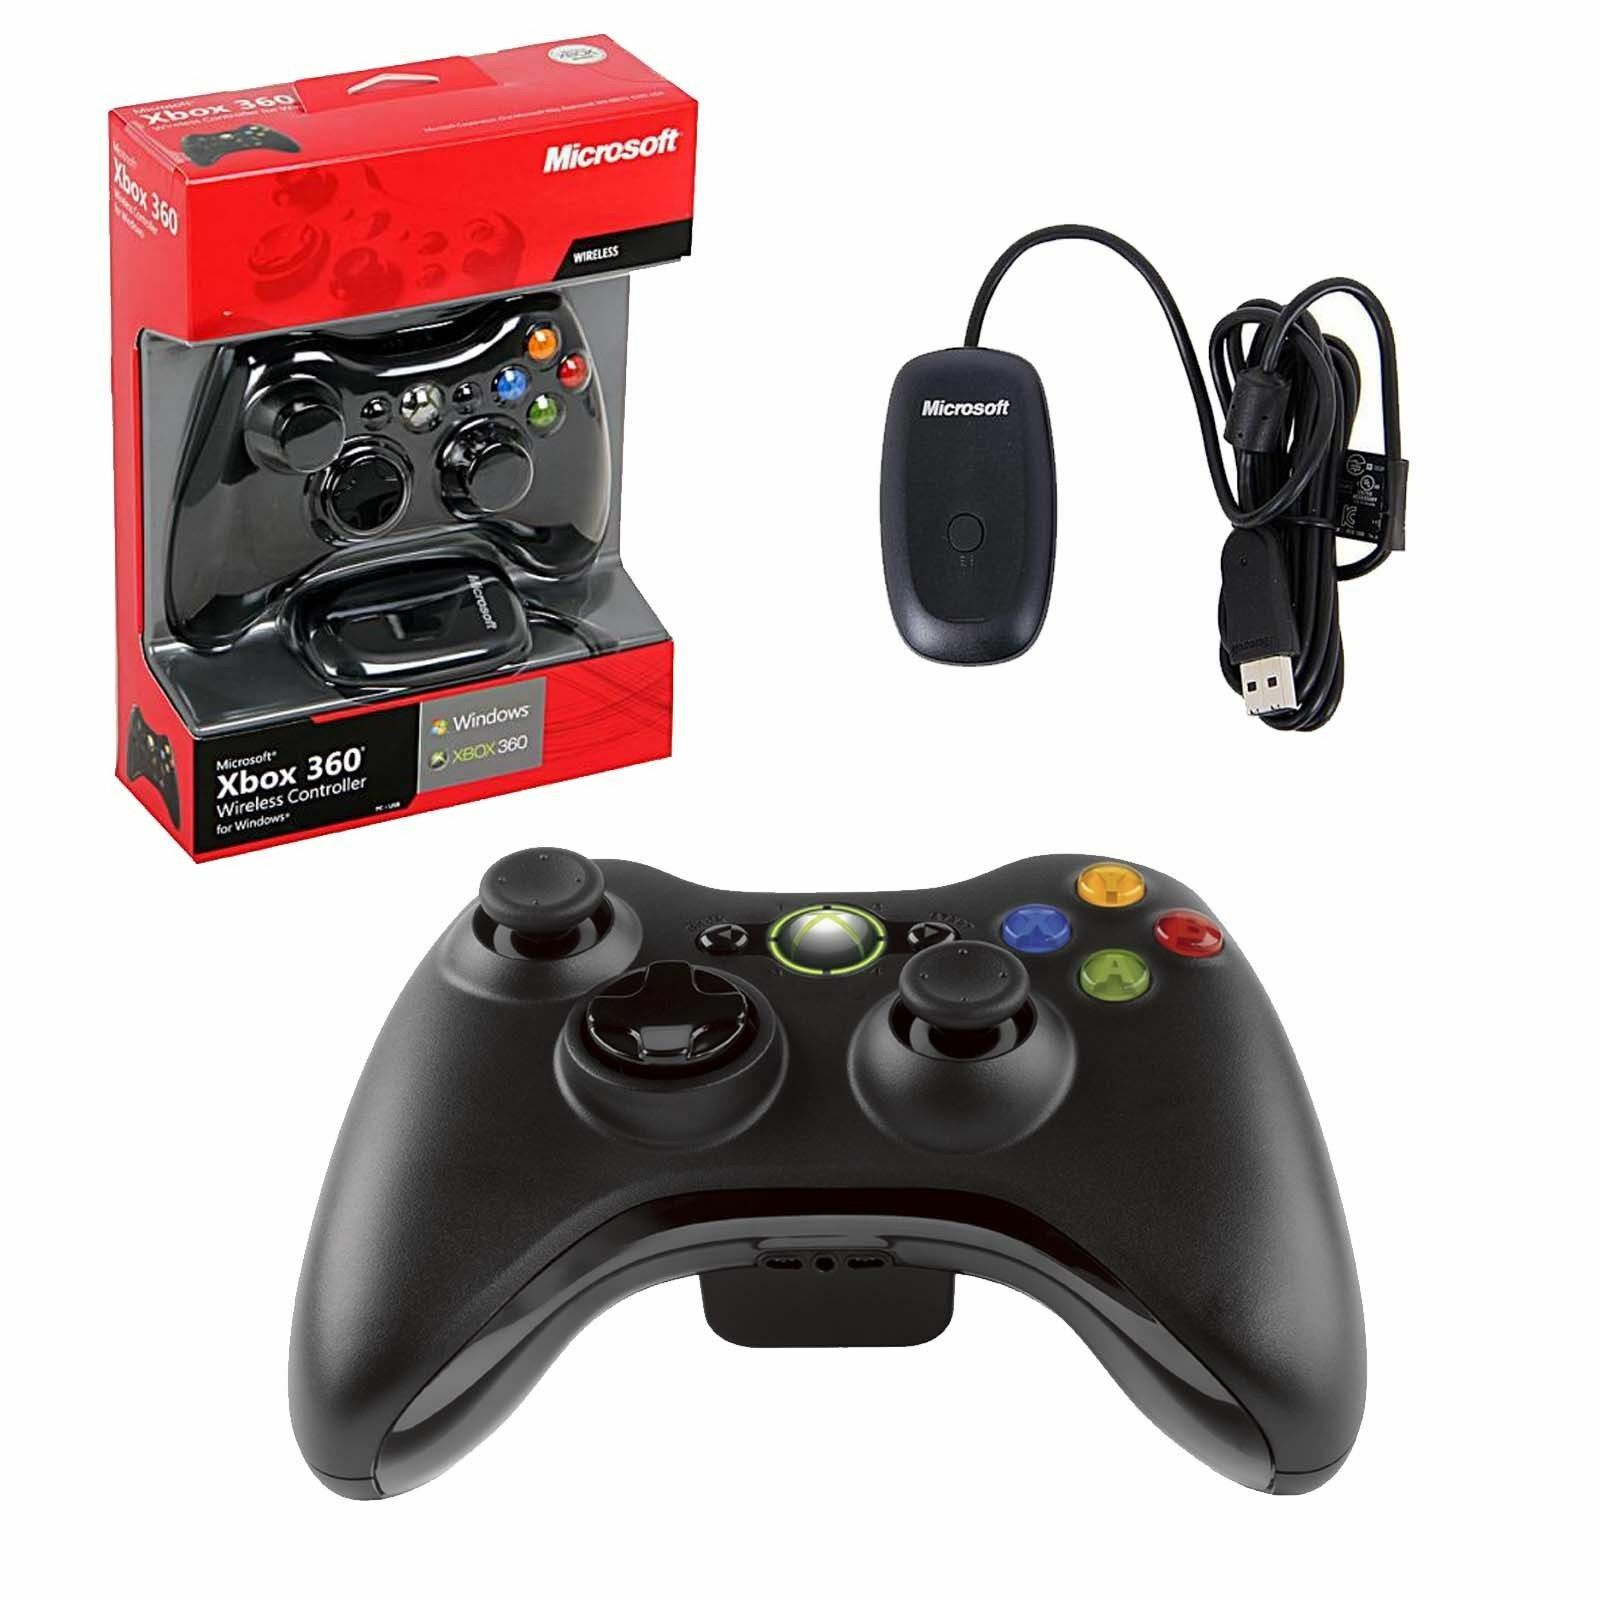 Microsoft Xbox 360 Wireless Controller for Windows & Xbox 360 ...